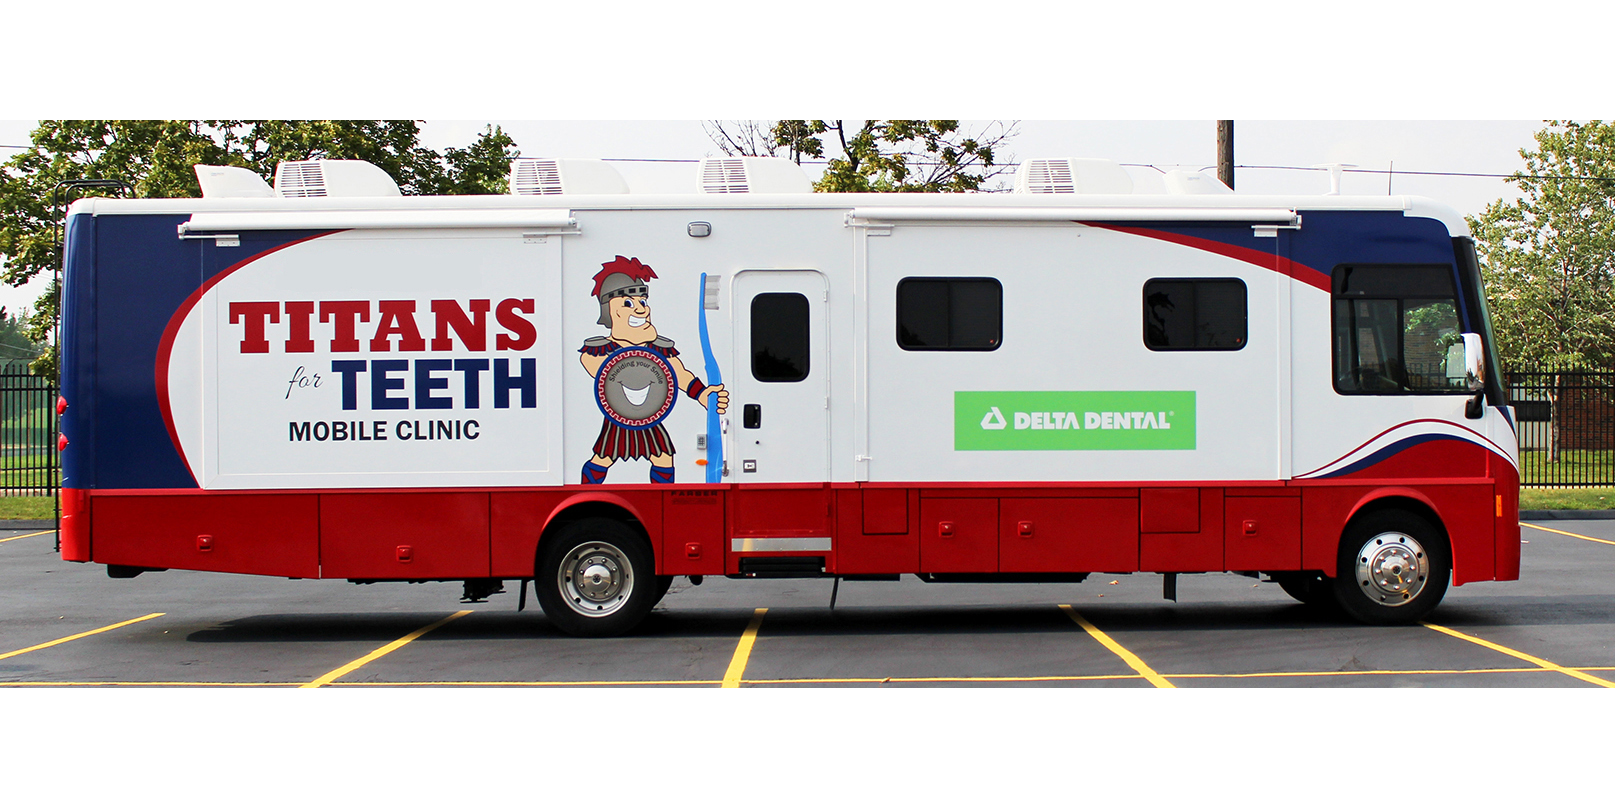 Detroit Mercy Dental's mobile clinic is funded, in part, by corporate grants.